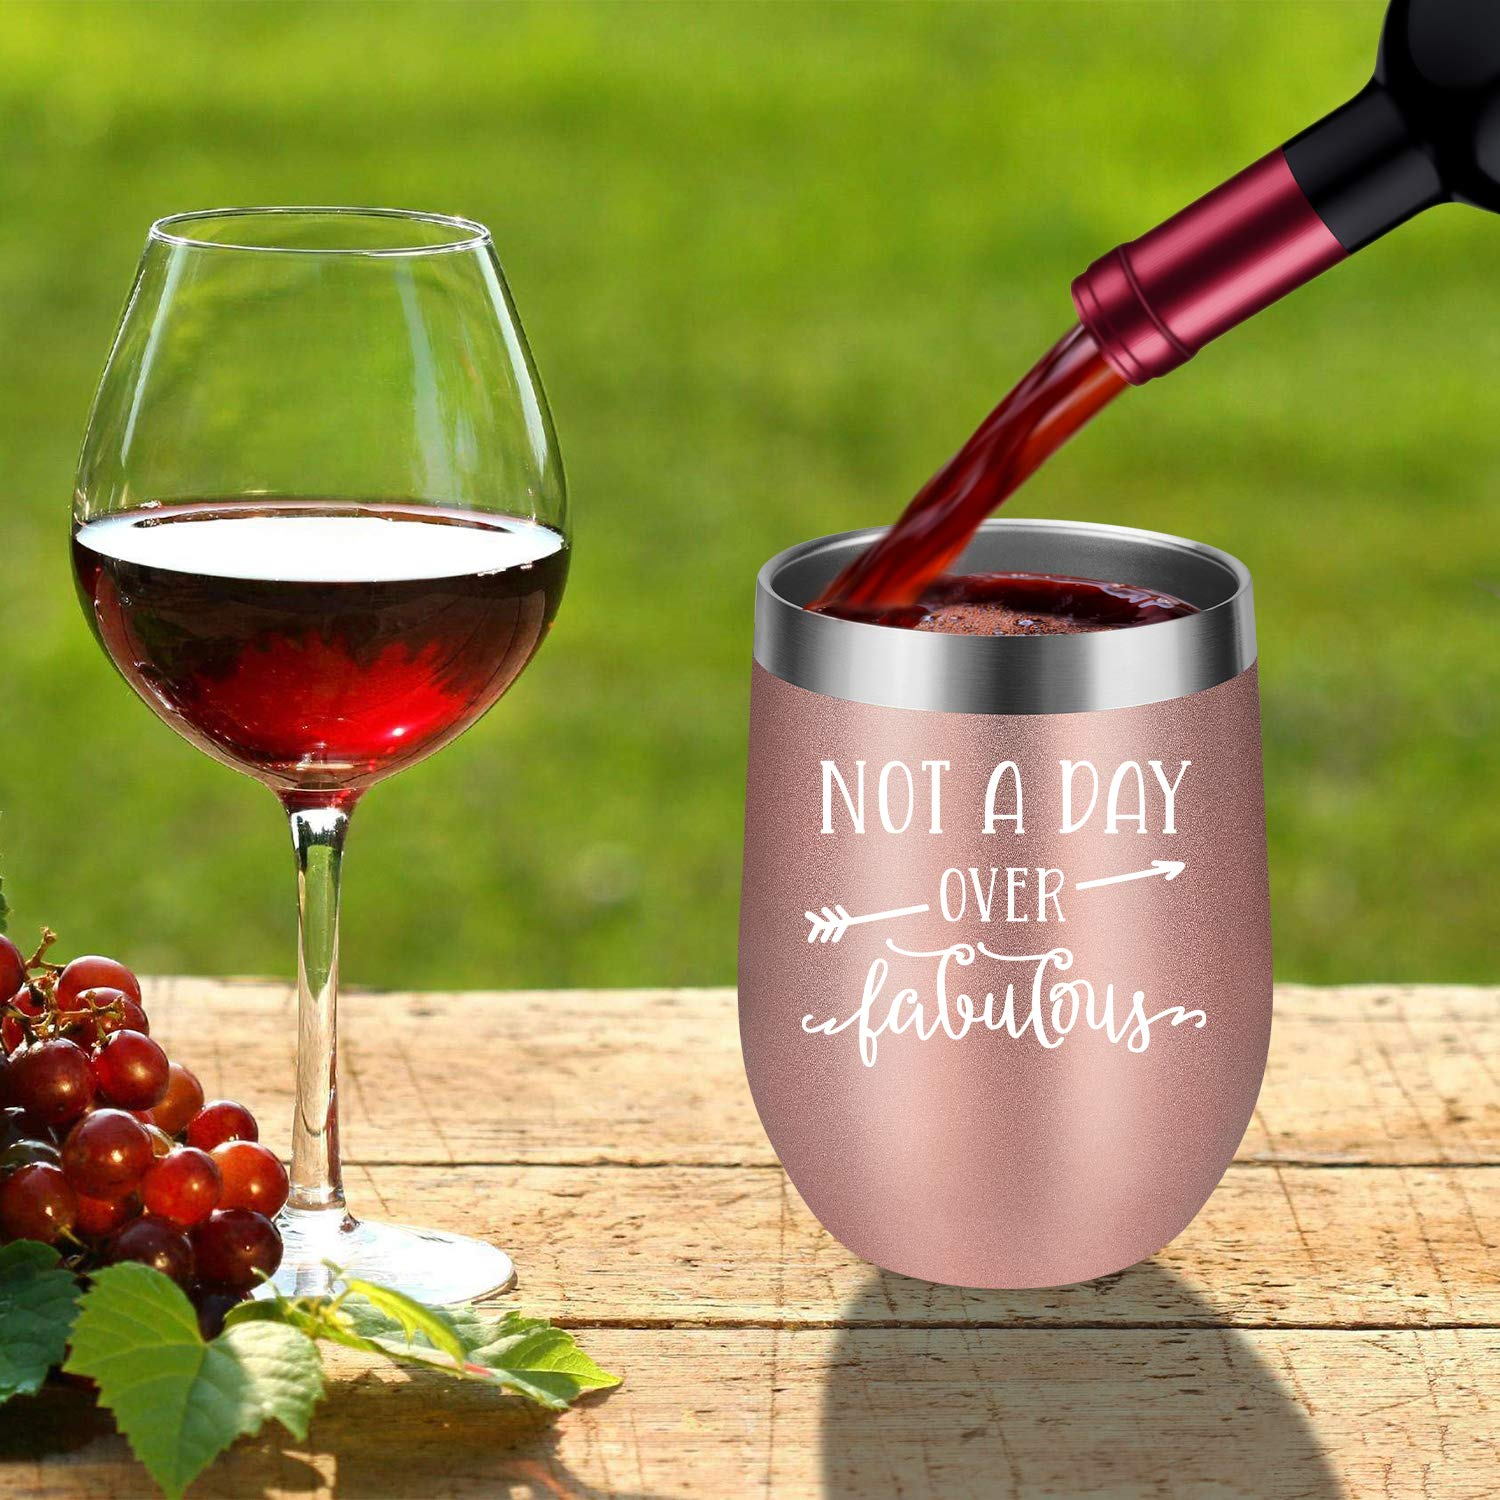 Not a Day Over Fabulous - Fun Birthday Gifts for Women - Funny Birthday Wine Gift Ideas for Her, Best Friend BFF, Mom, Grandma, Wife, Daughter, Sister, Aunt, Coworker - LEADO Birthday Wine Tumbler by LEADO (Image #6)